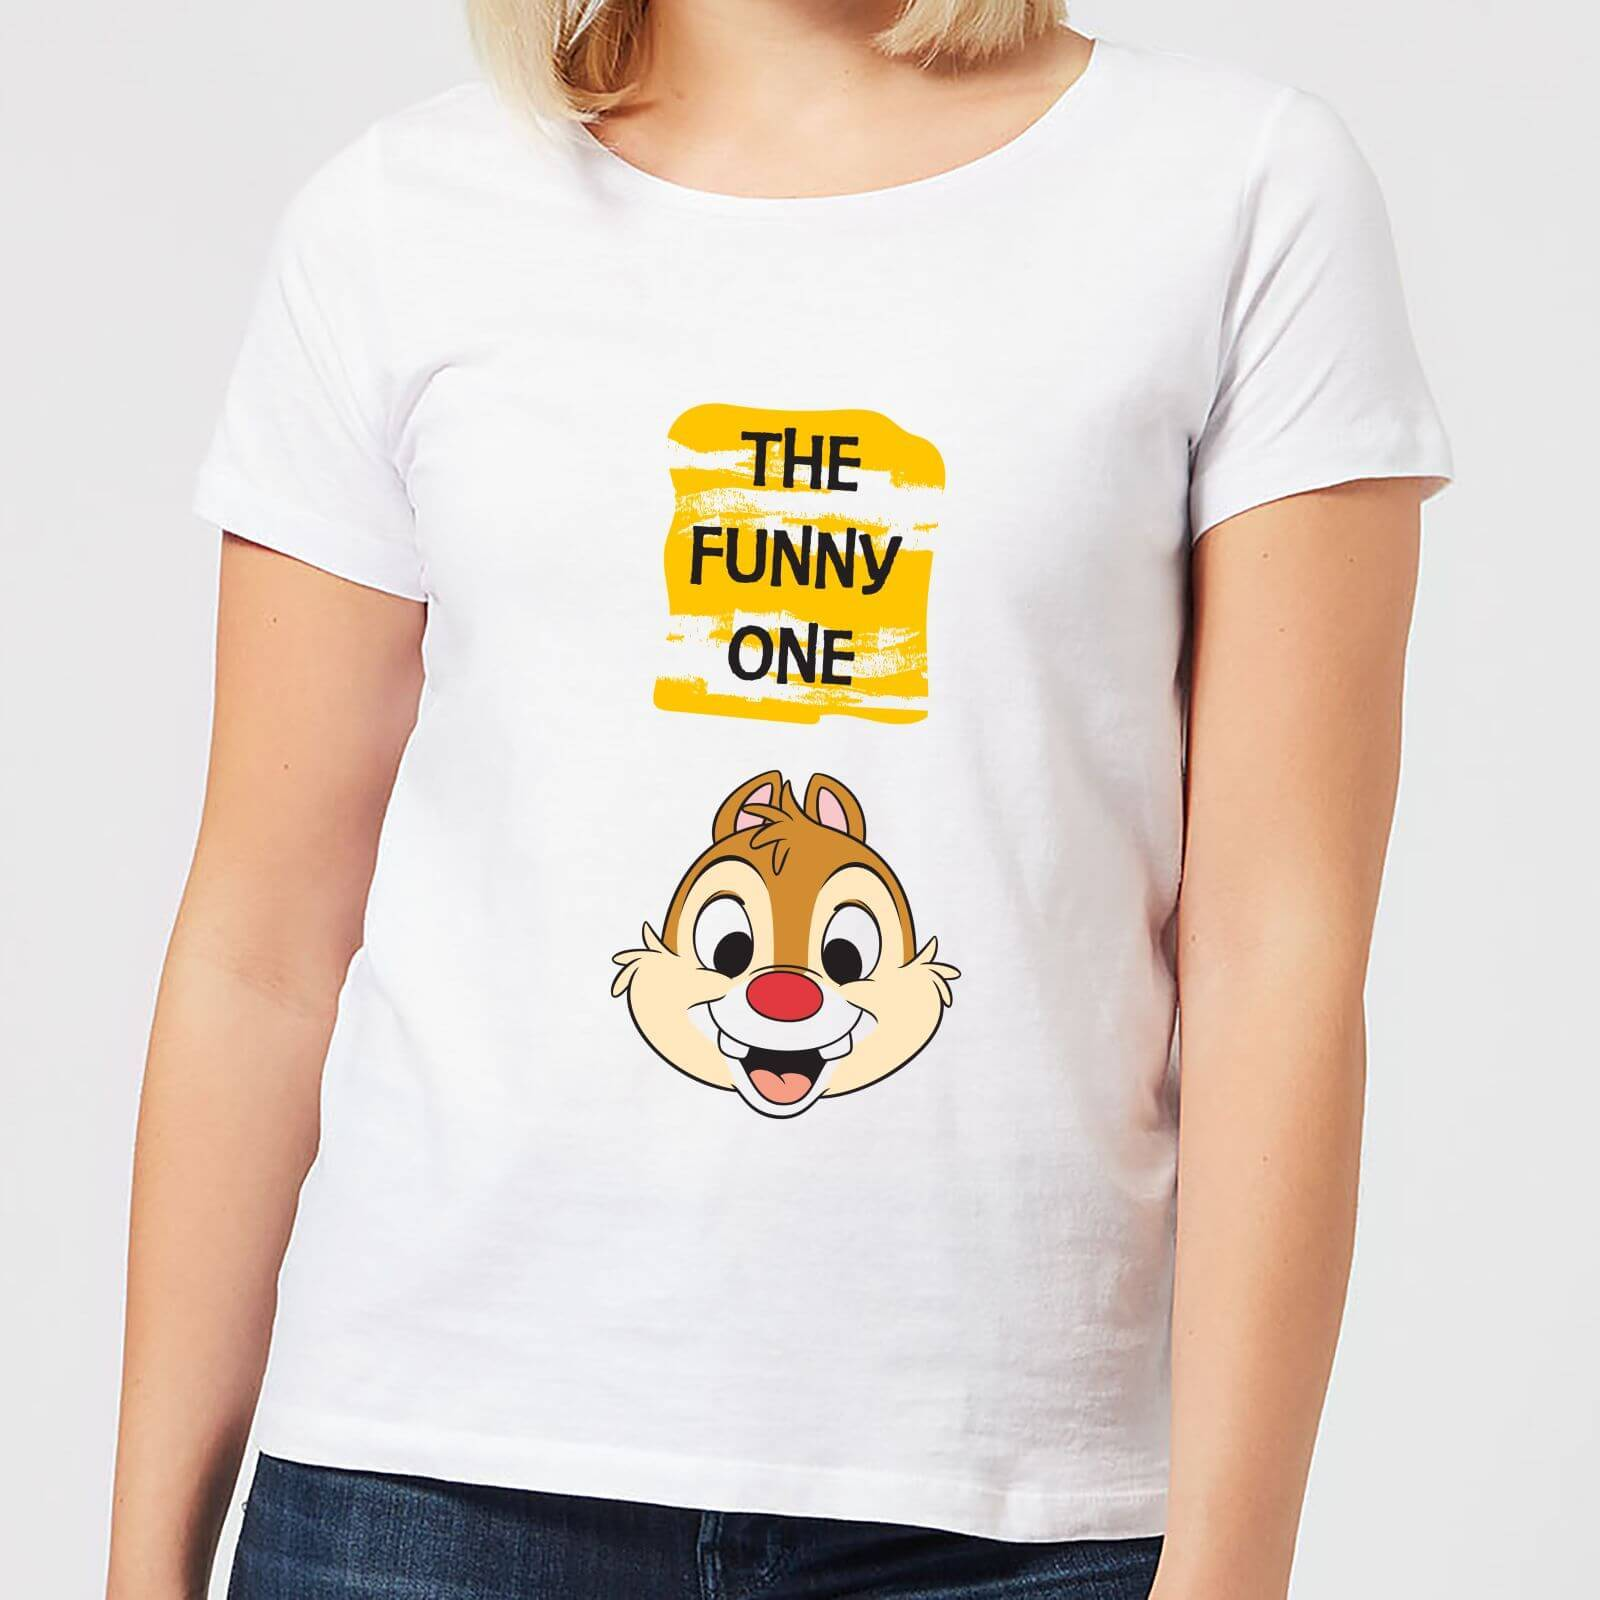 Disney Chip 'N' Dale The Funny One Women's T-Shirt - White - XS - White